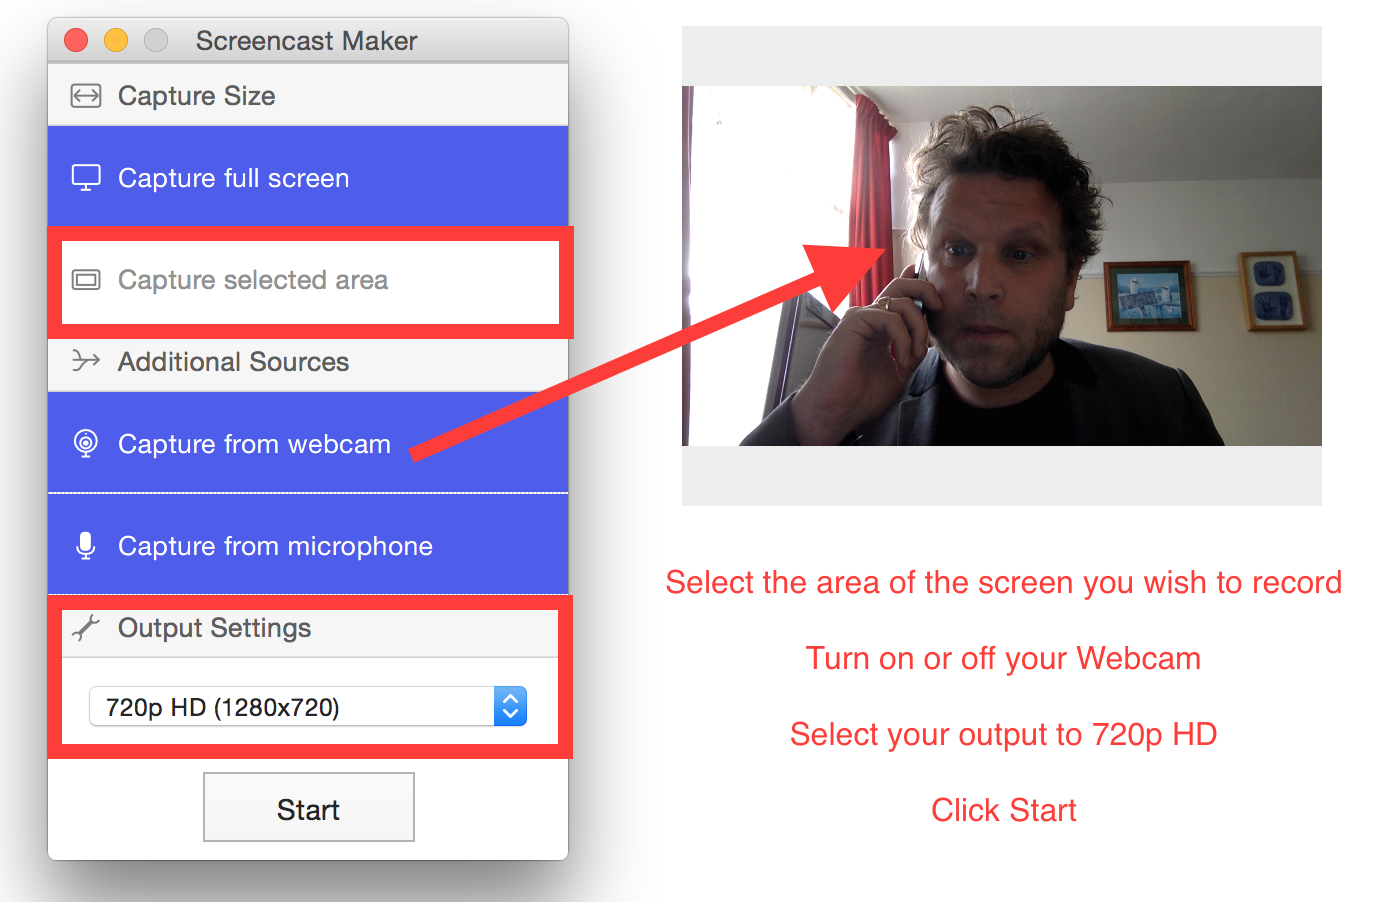 Open the Screencast Maker App - Select screen size and your preferred output and click start.